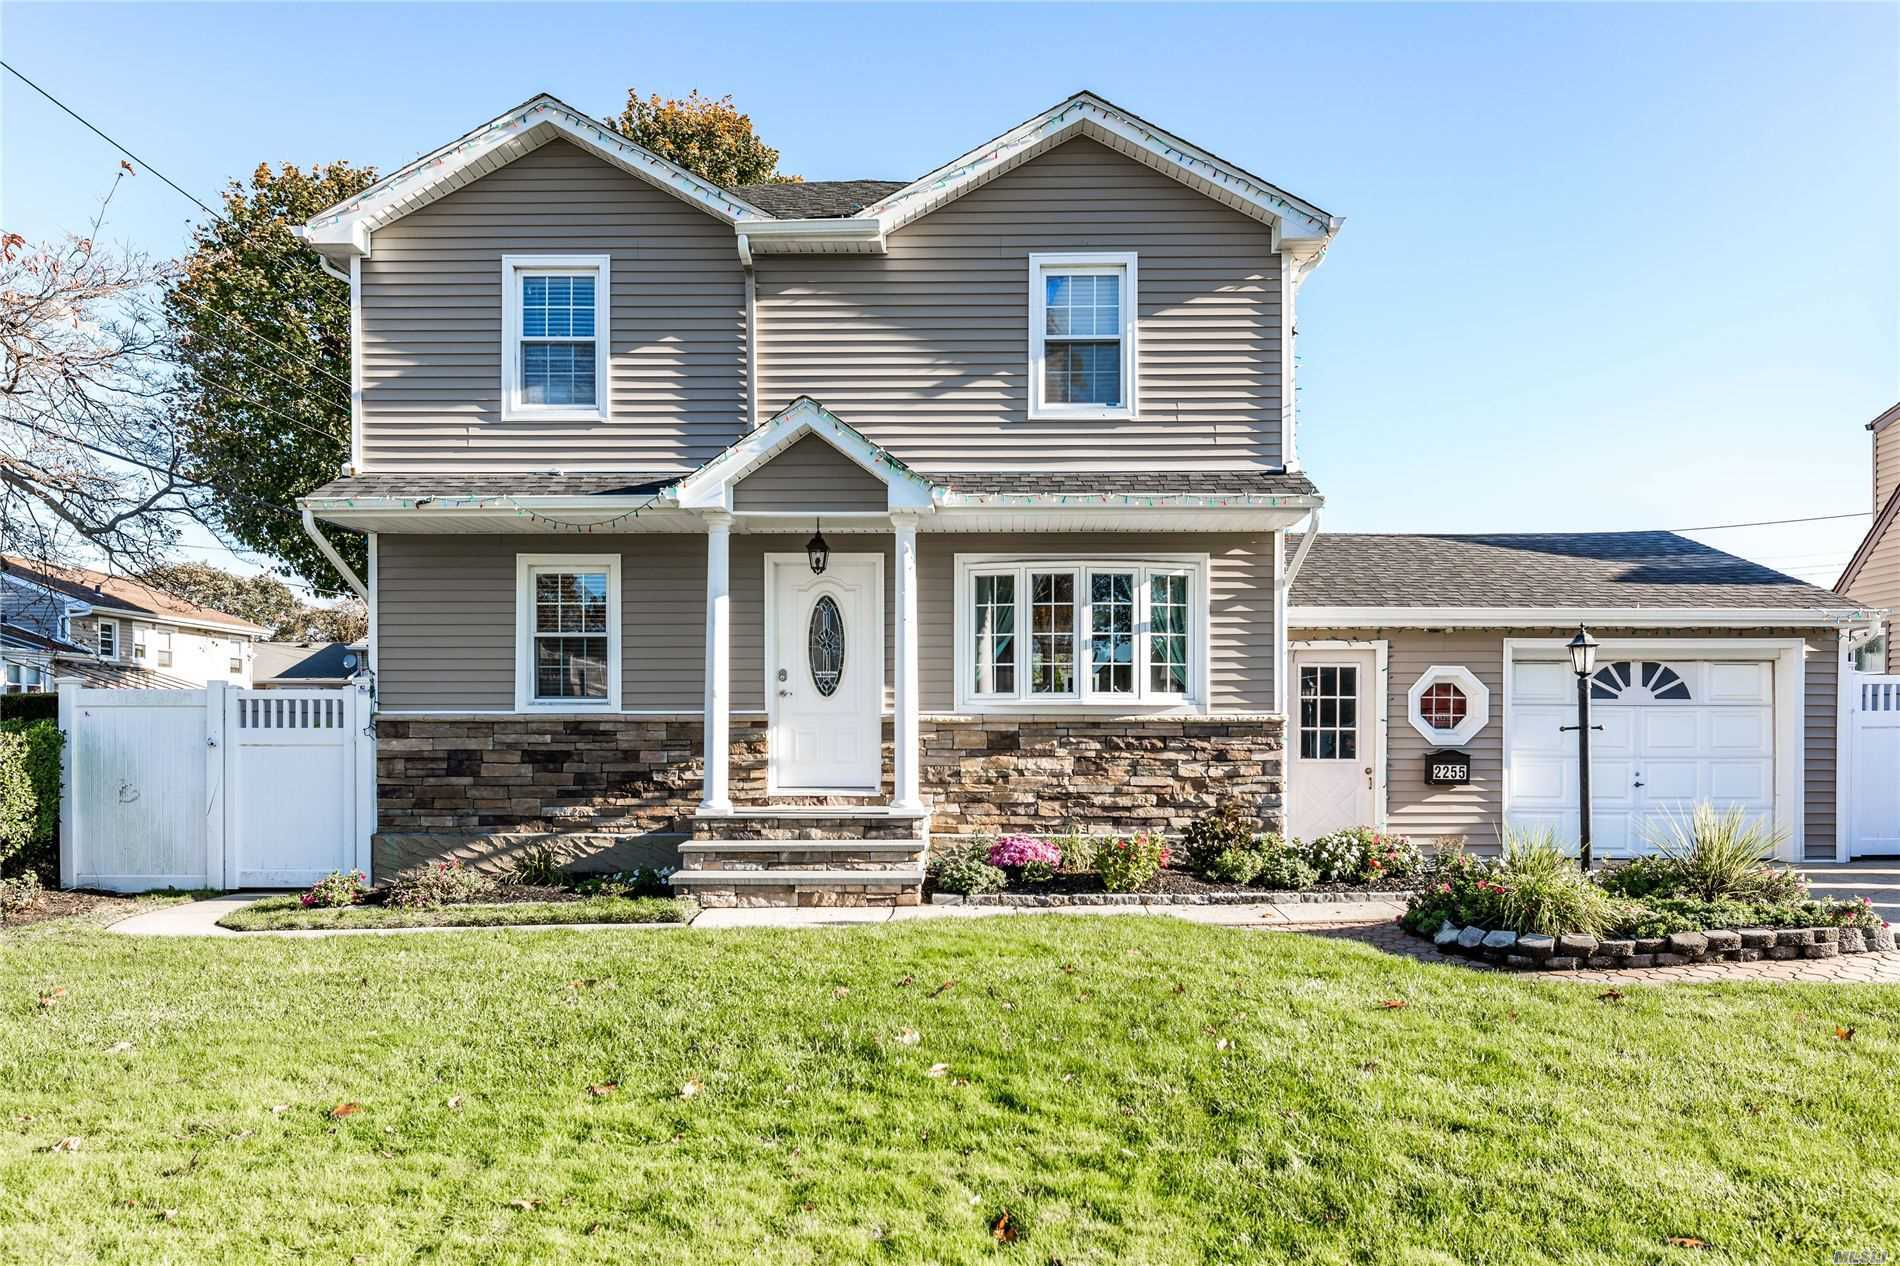 2255 1st St - East Meadow, New York